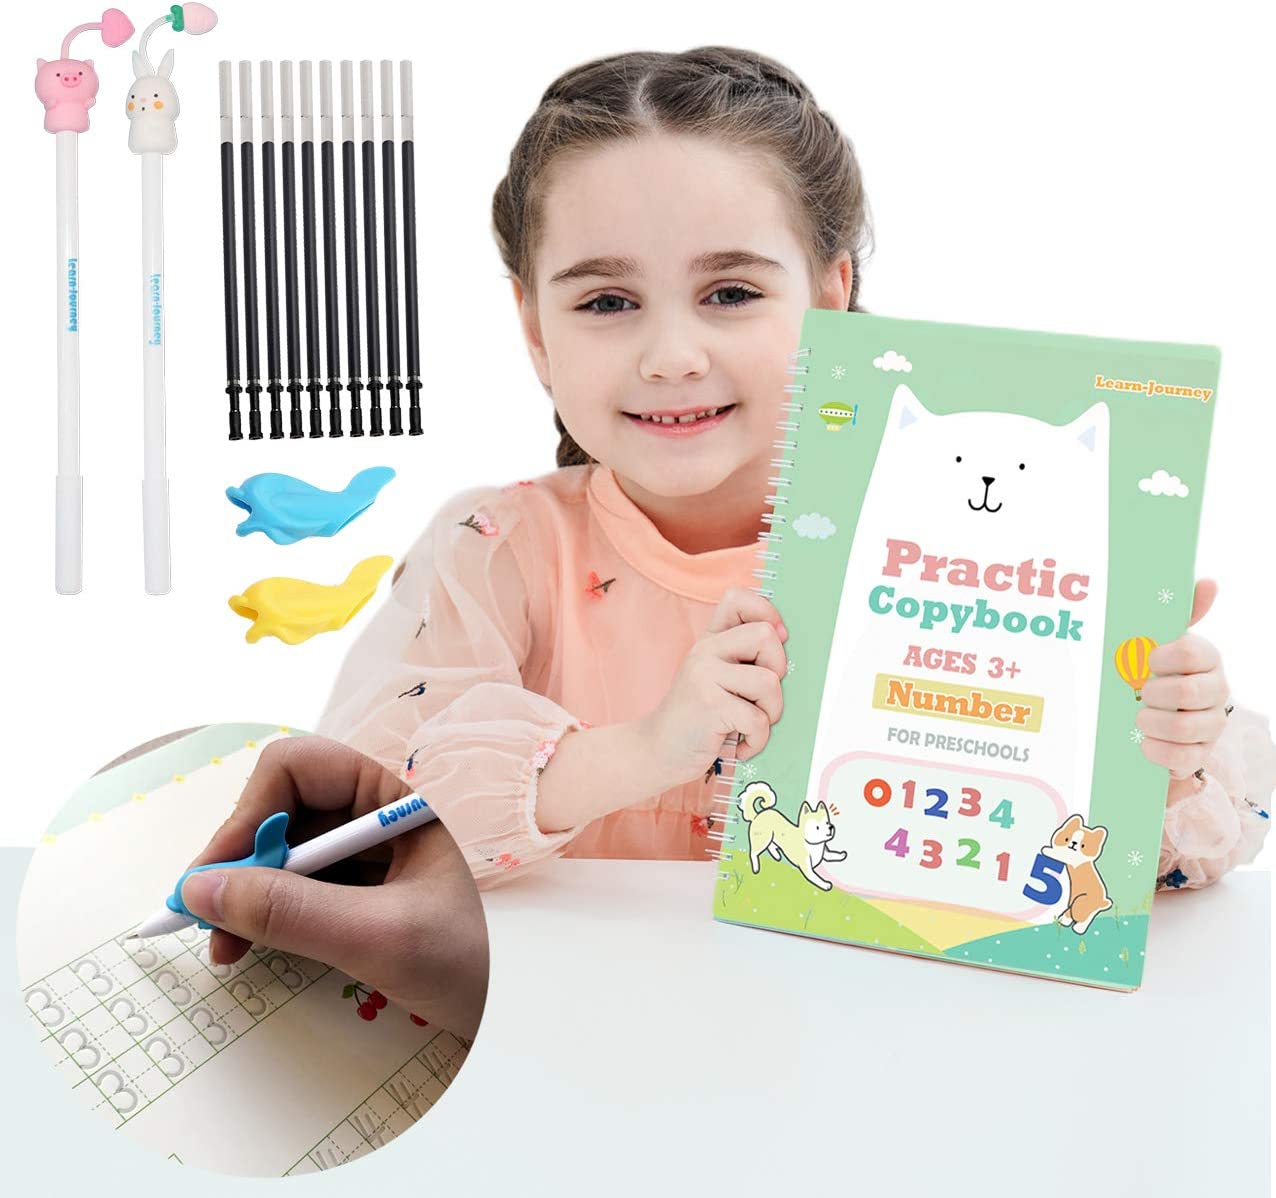 Magic Practice Copybook for Kids - The Print Handwiriting Workbook-Reusable Writing Practice Book for Preschools(Number Book with Pen)